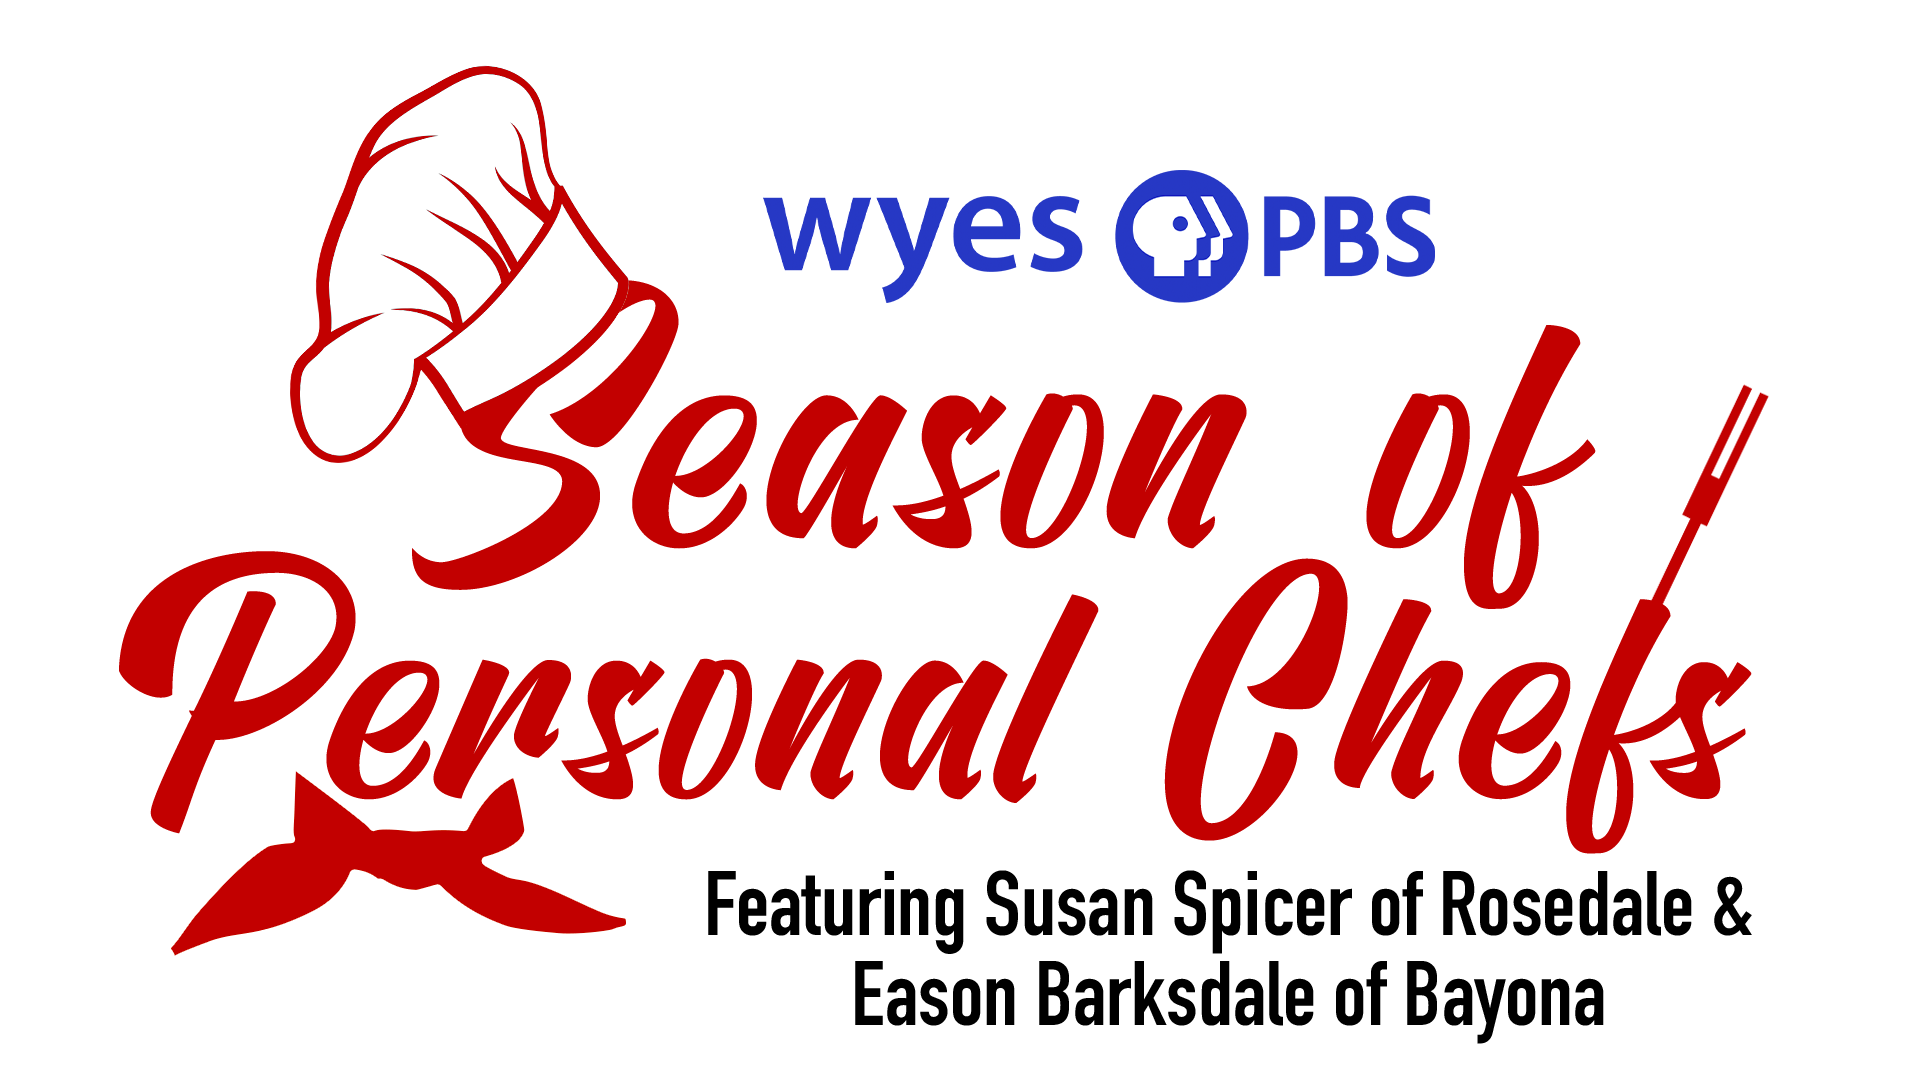 WYES Season of Personal Chefs Susan Spicer